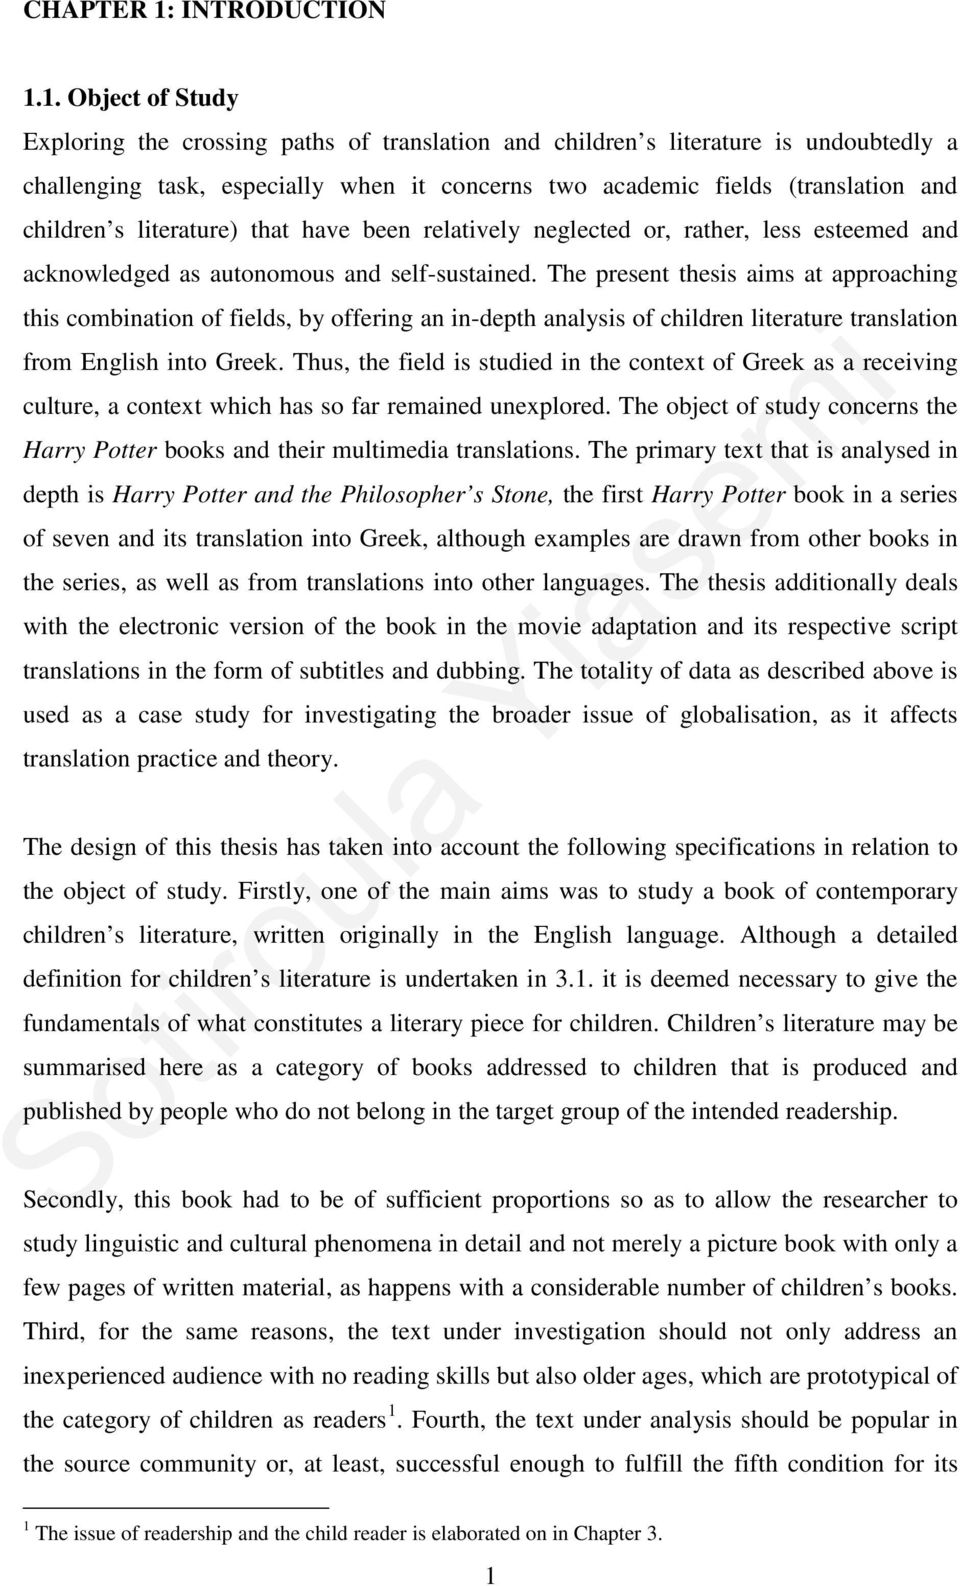 1. Object of Study Exploring the crossing paths of translation and children s literature is undoubtedly a challenging task, especially when it concerns two academic fields (translation and children s